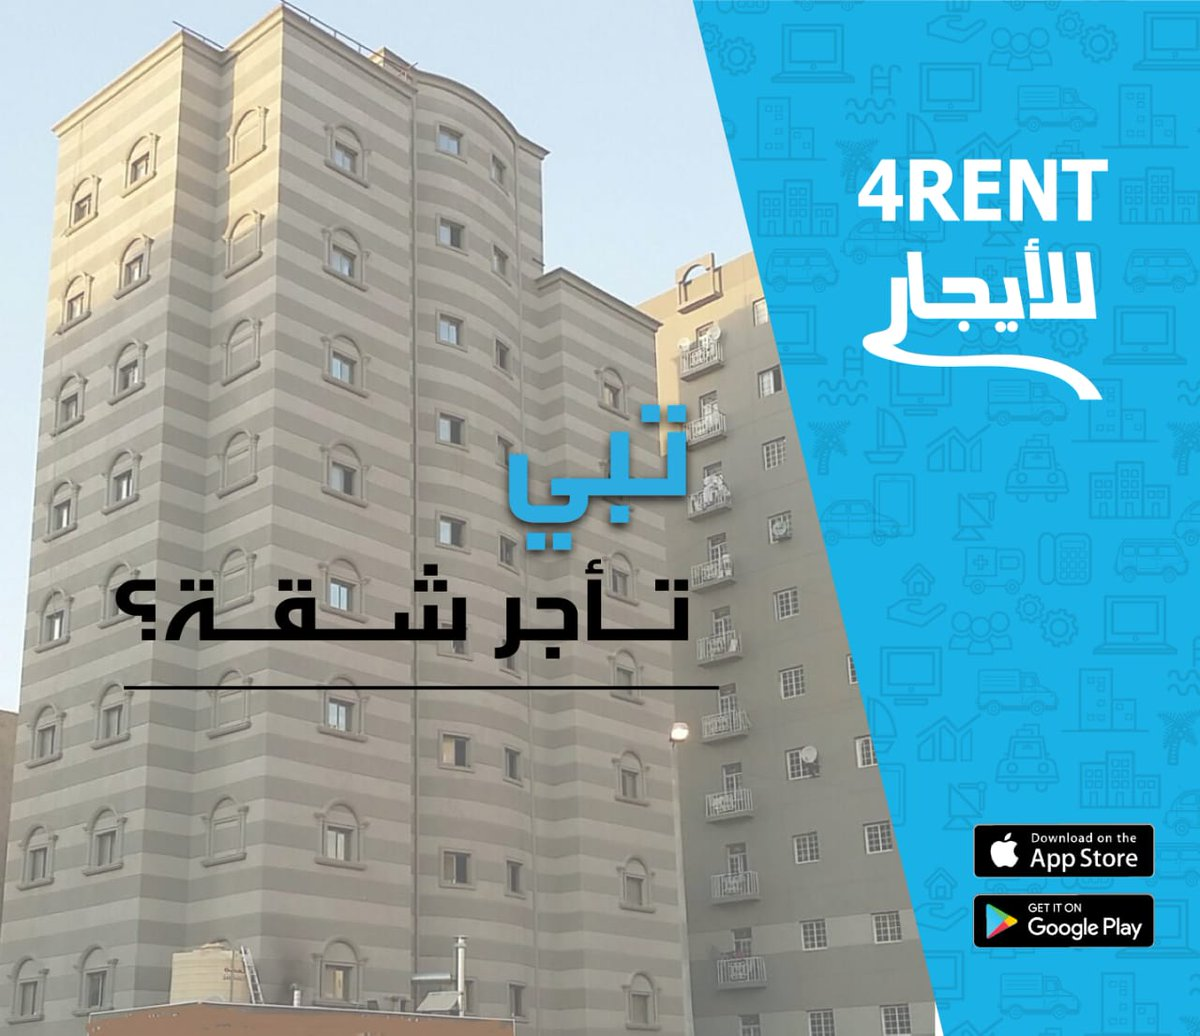 Looking to rent a flat...? in a specific place...? at specific price...?  Your search will come to an end  with 4Rent Available on Play-store and App-store...download now ...4Rent-Renting made simple @4Rent0  #4rent #flats4rent #apartments4rent #villas4rent #services4rent #kuwaitpic.twitter.com/Z1NAsJdfXt